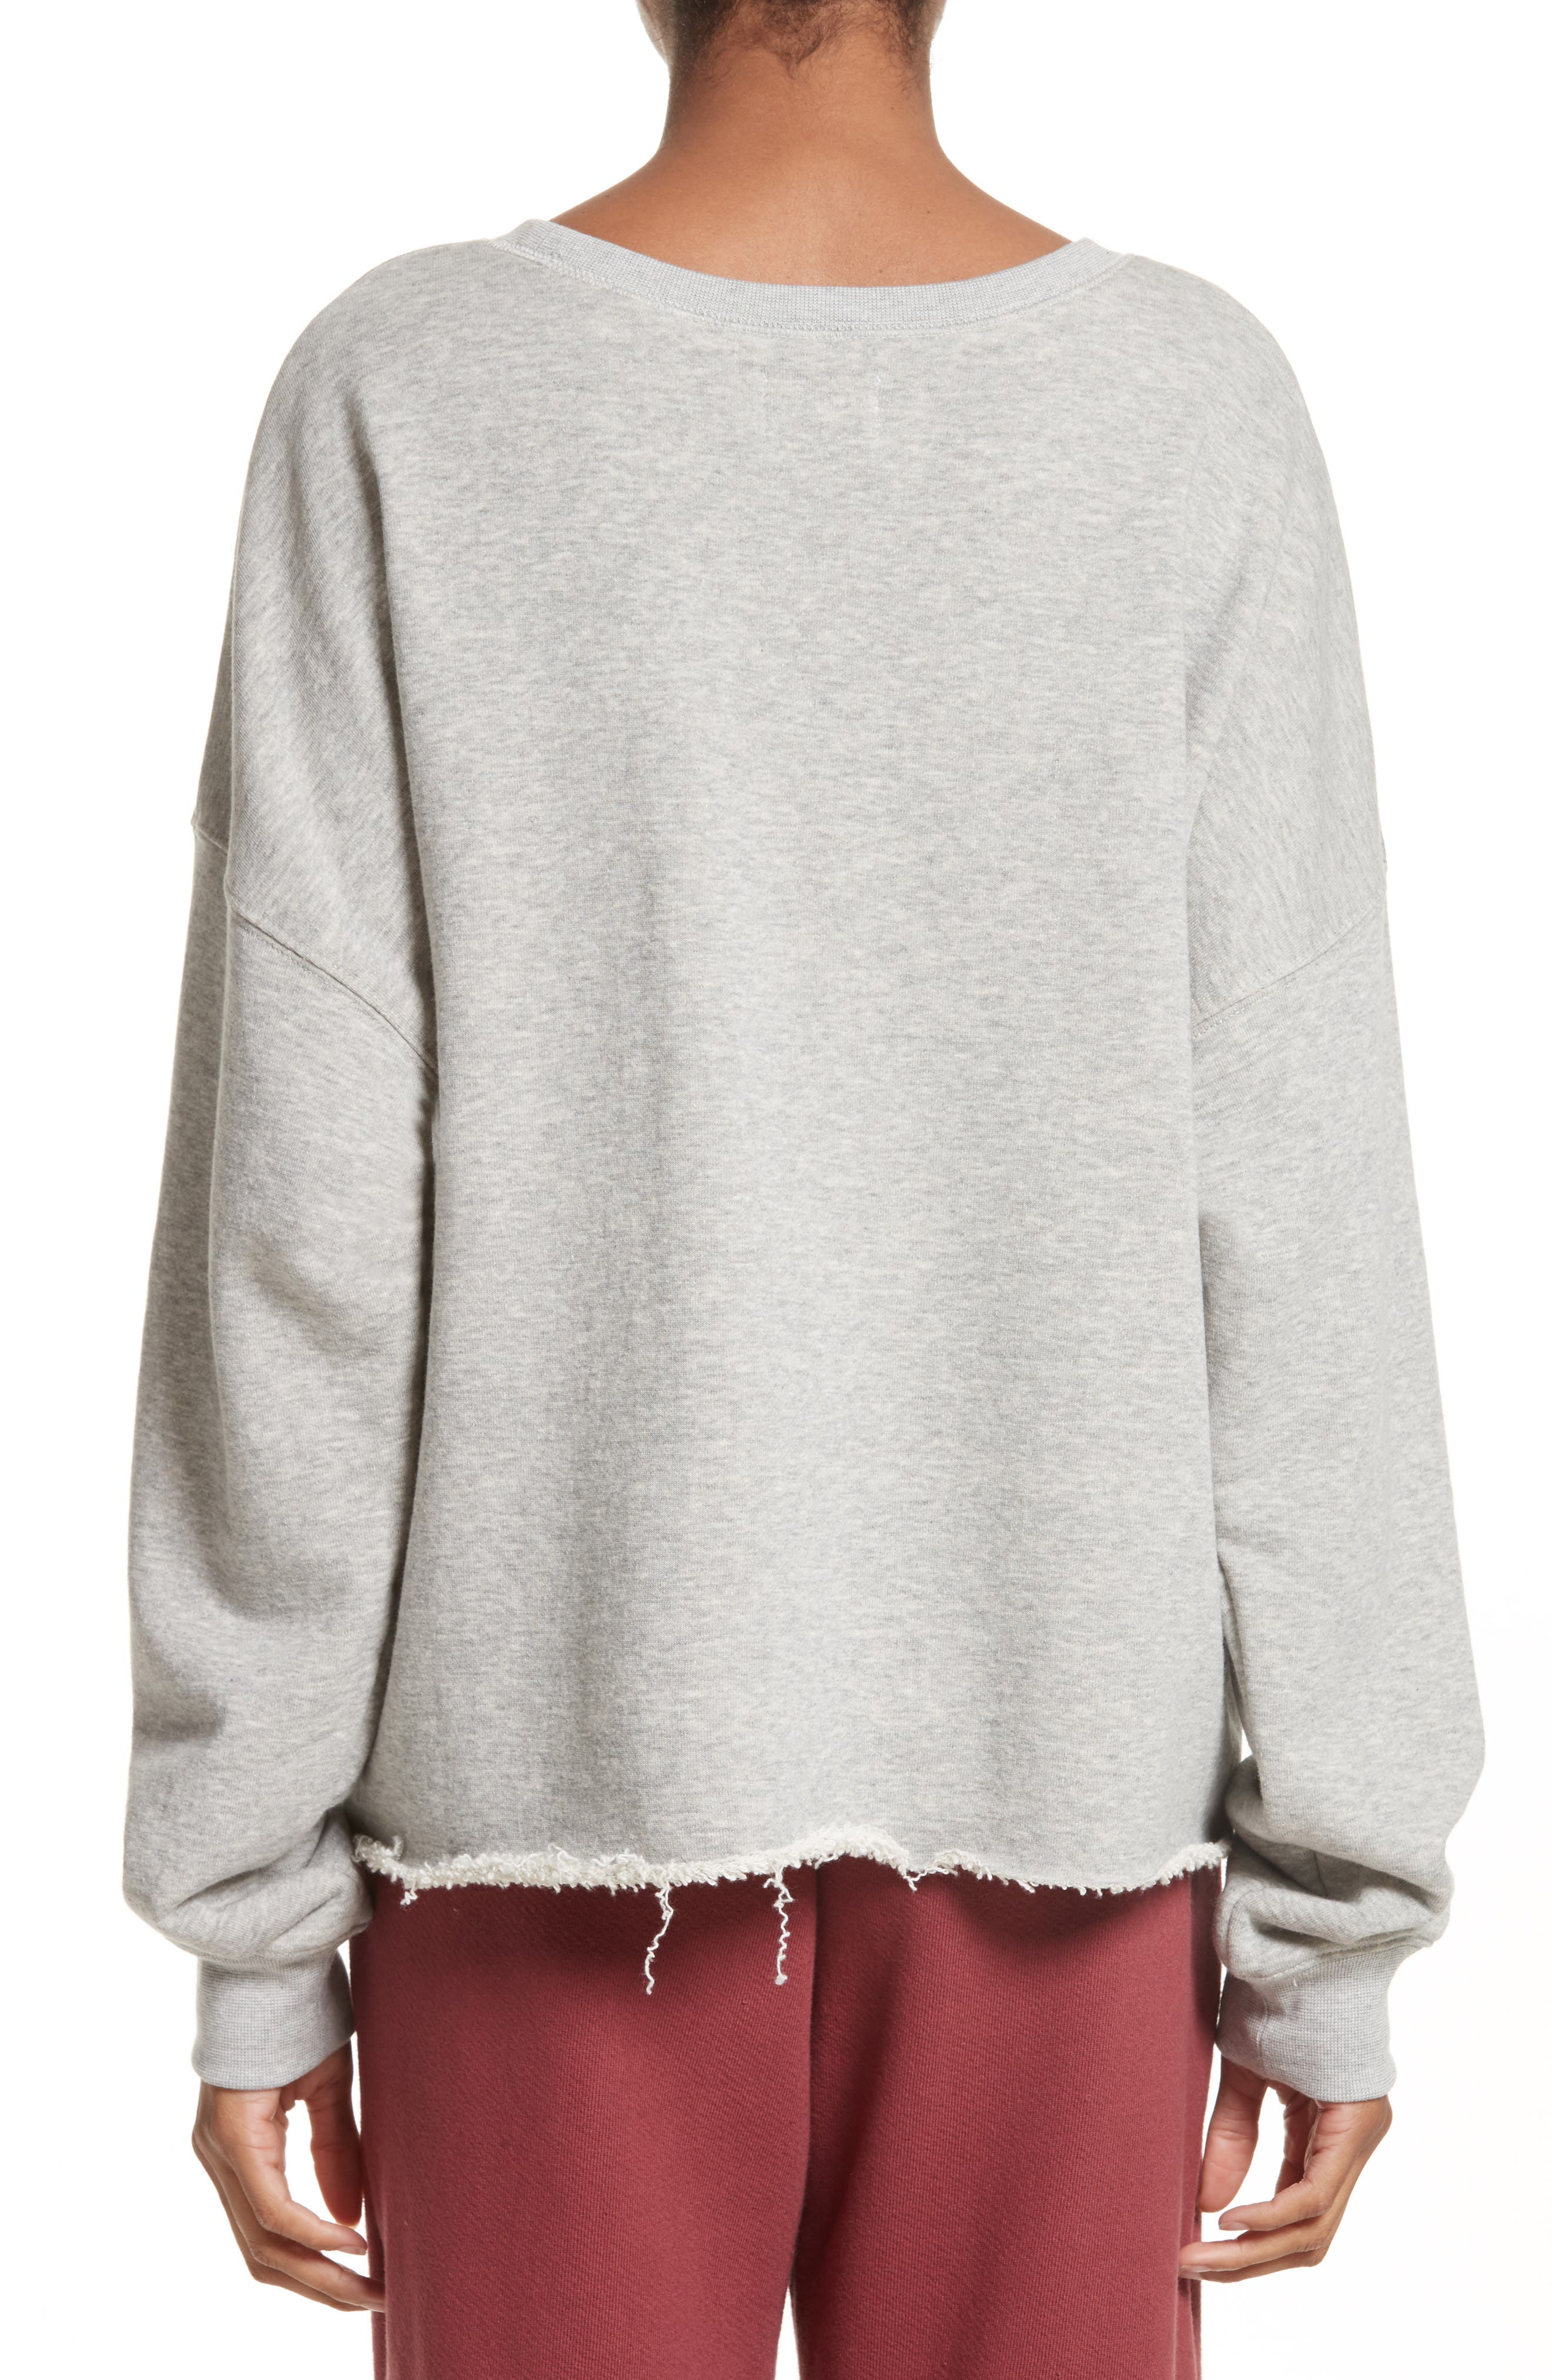 Brushed Terry Sweatshirt,                             Alternate thumbnail 2, color,                             020